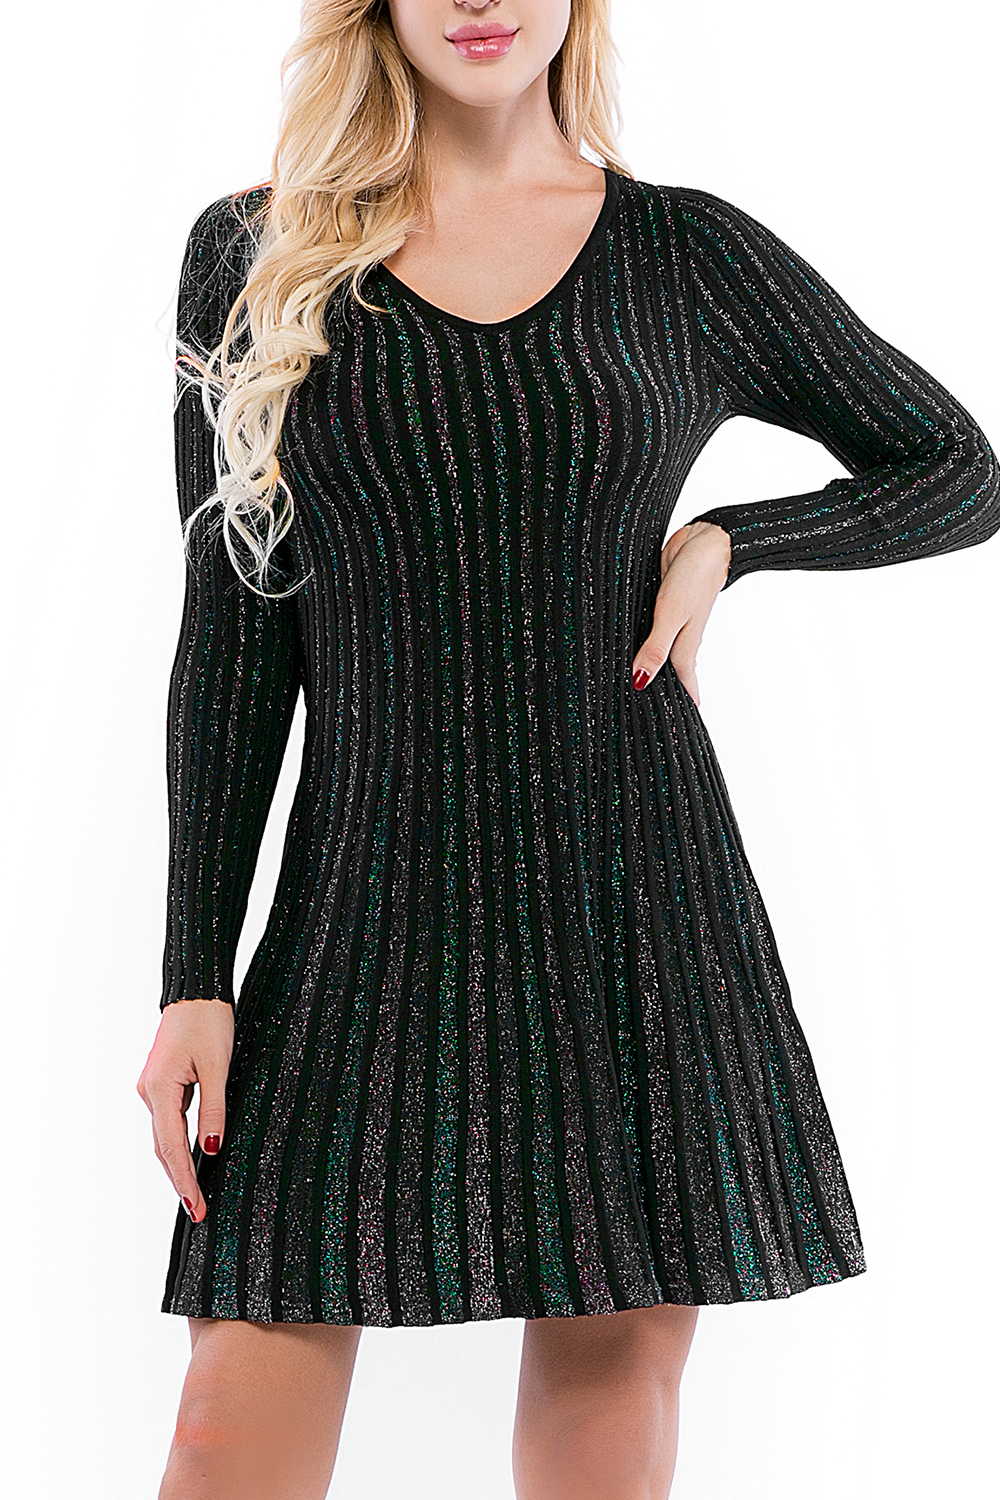 Glitter Bodycon Stretchy Party Dress